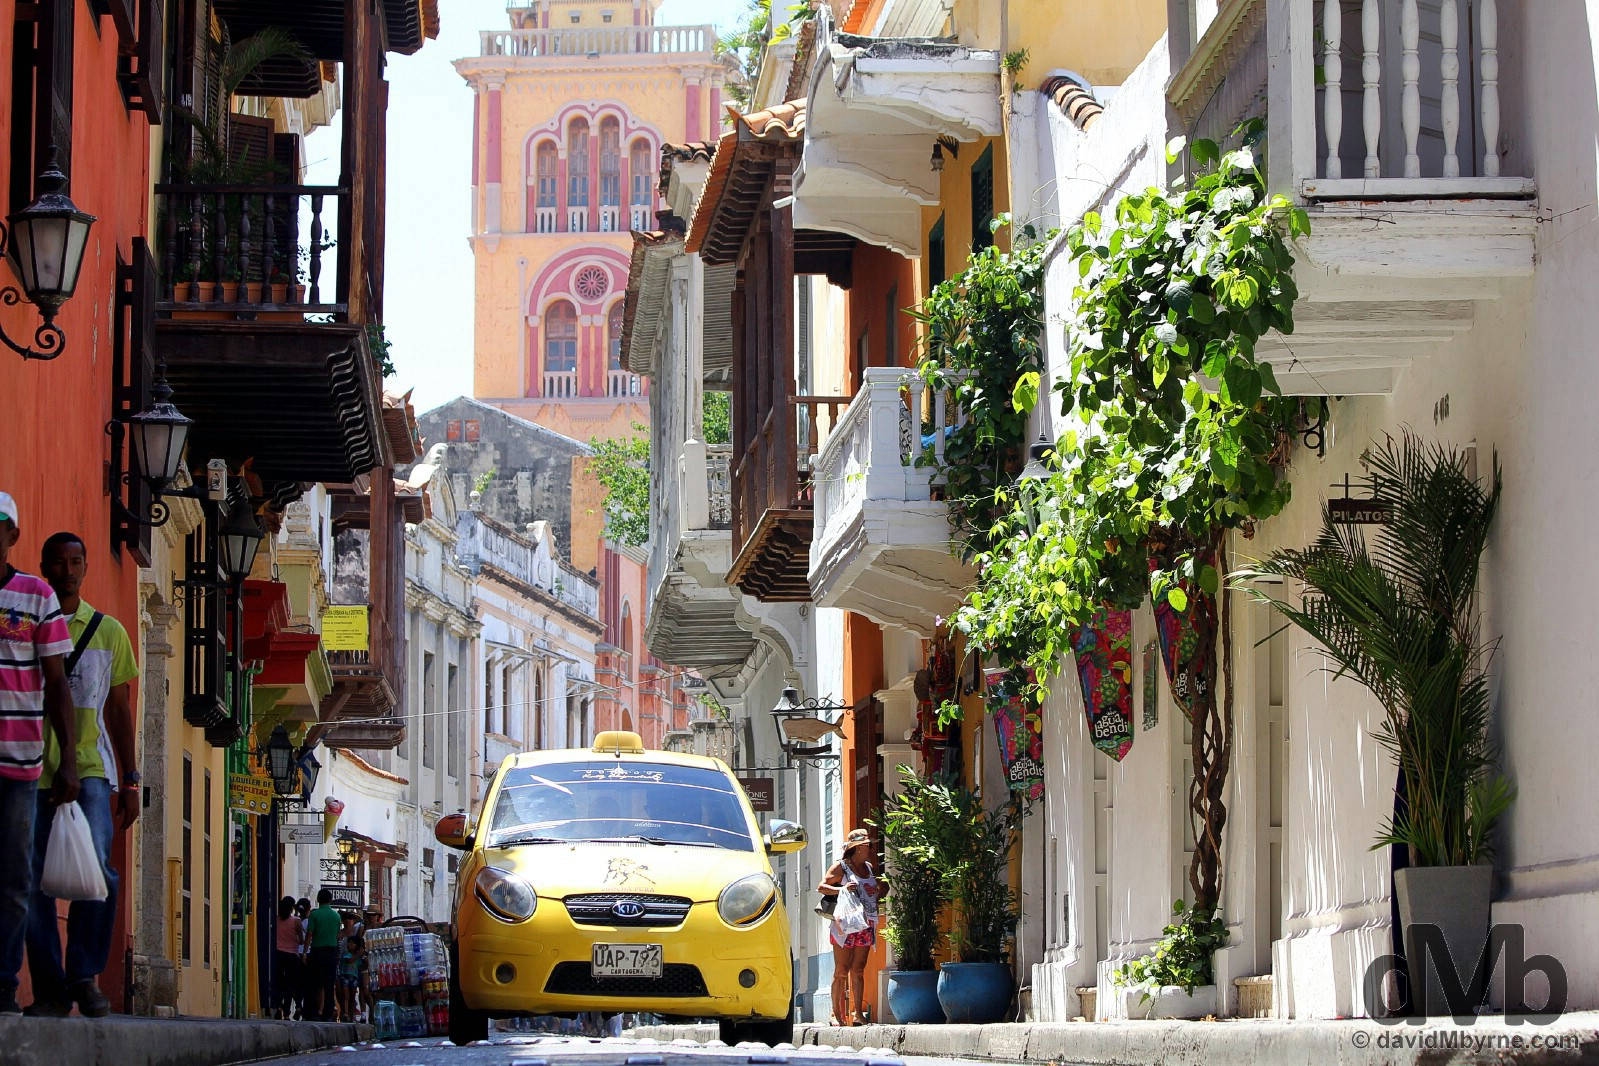 Calle de la Estrella, Old Town, Cartagena Colombia. June 25, 2015.